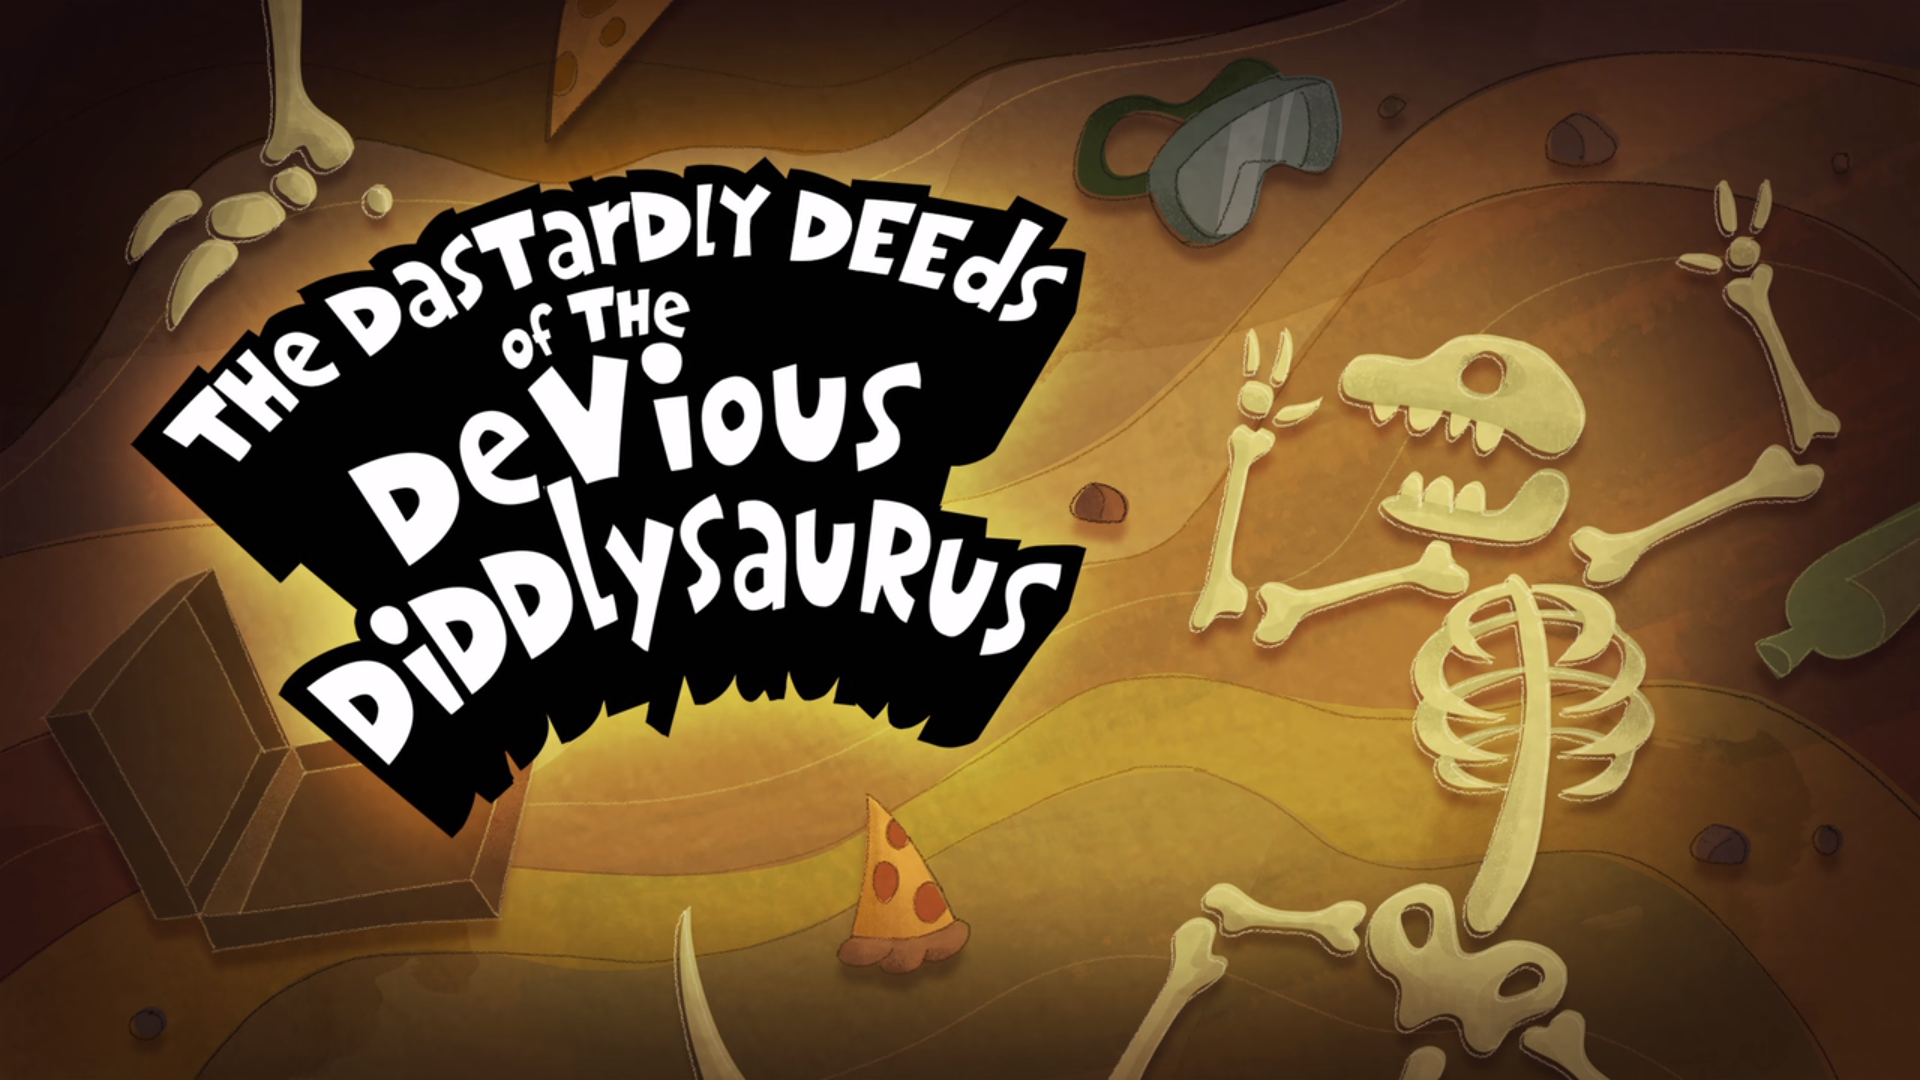 The Dastardly Deed of the Devious Diddlysaurus